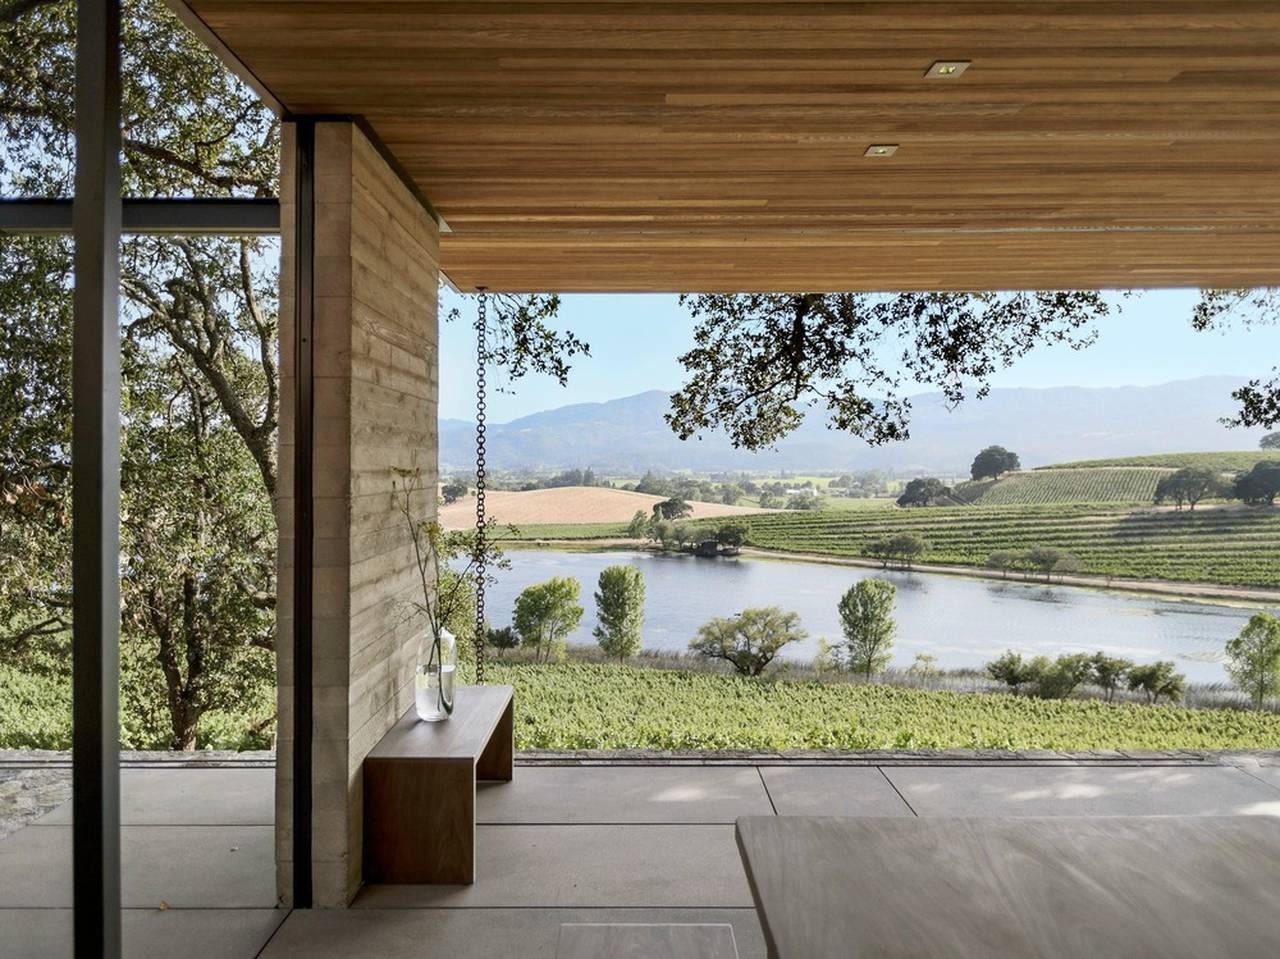 The pavilions present a serene setting where one can experience the vista of the vineyard and lake below : Photo credit © Matthew Williams